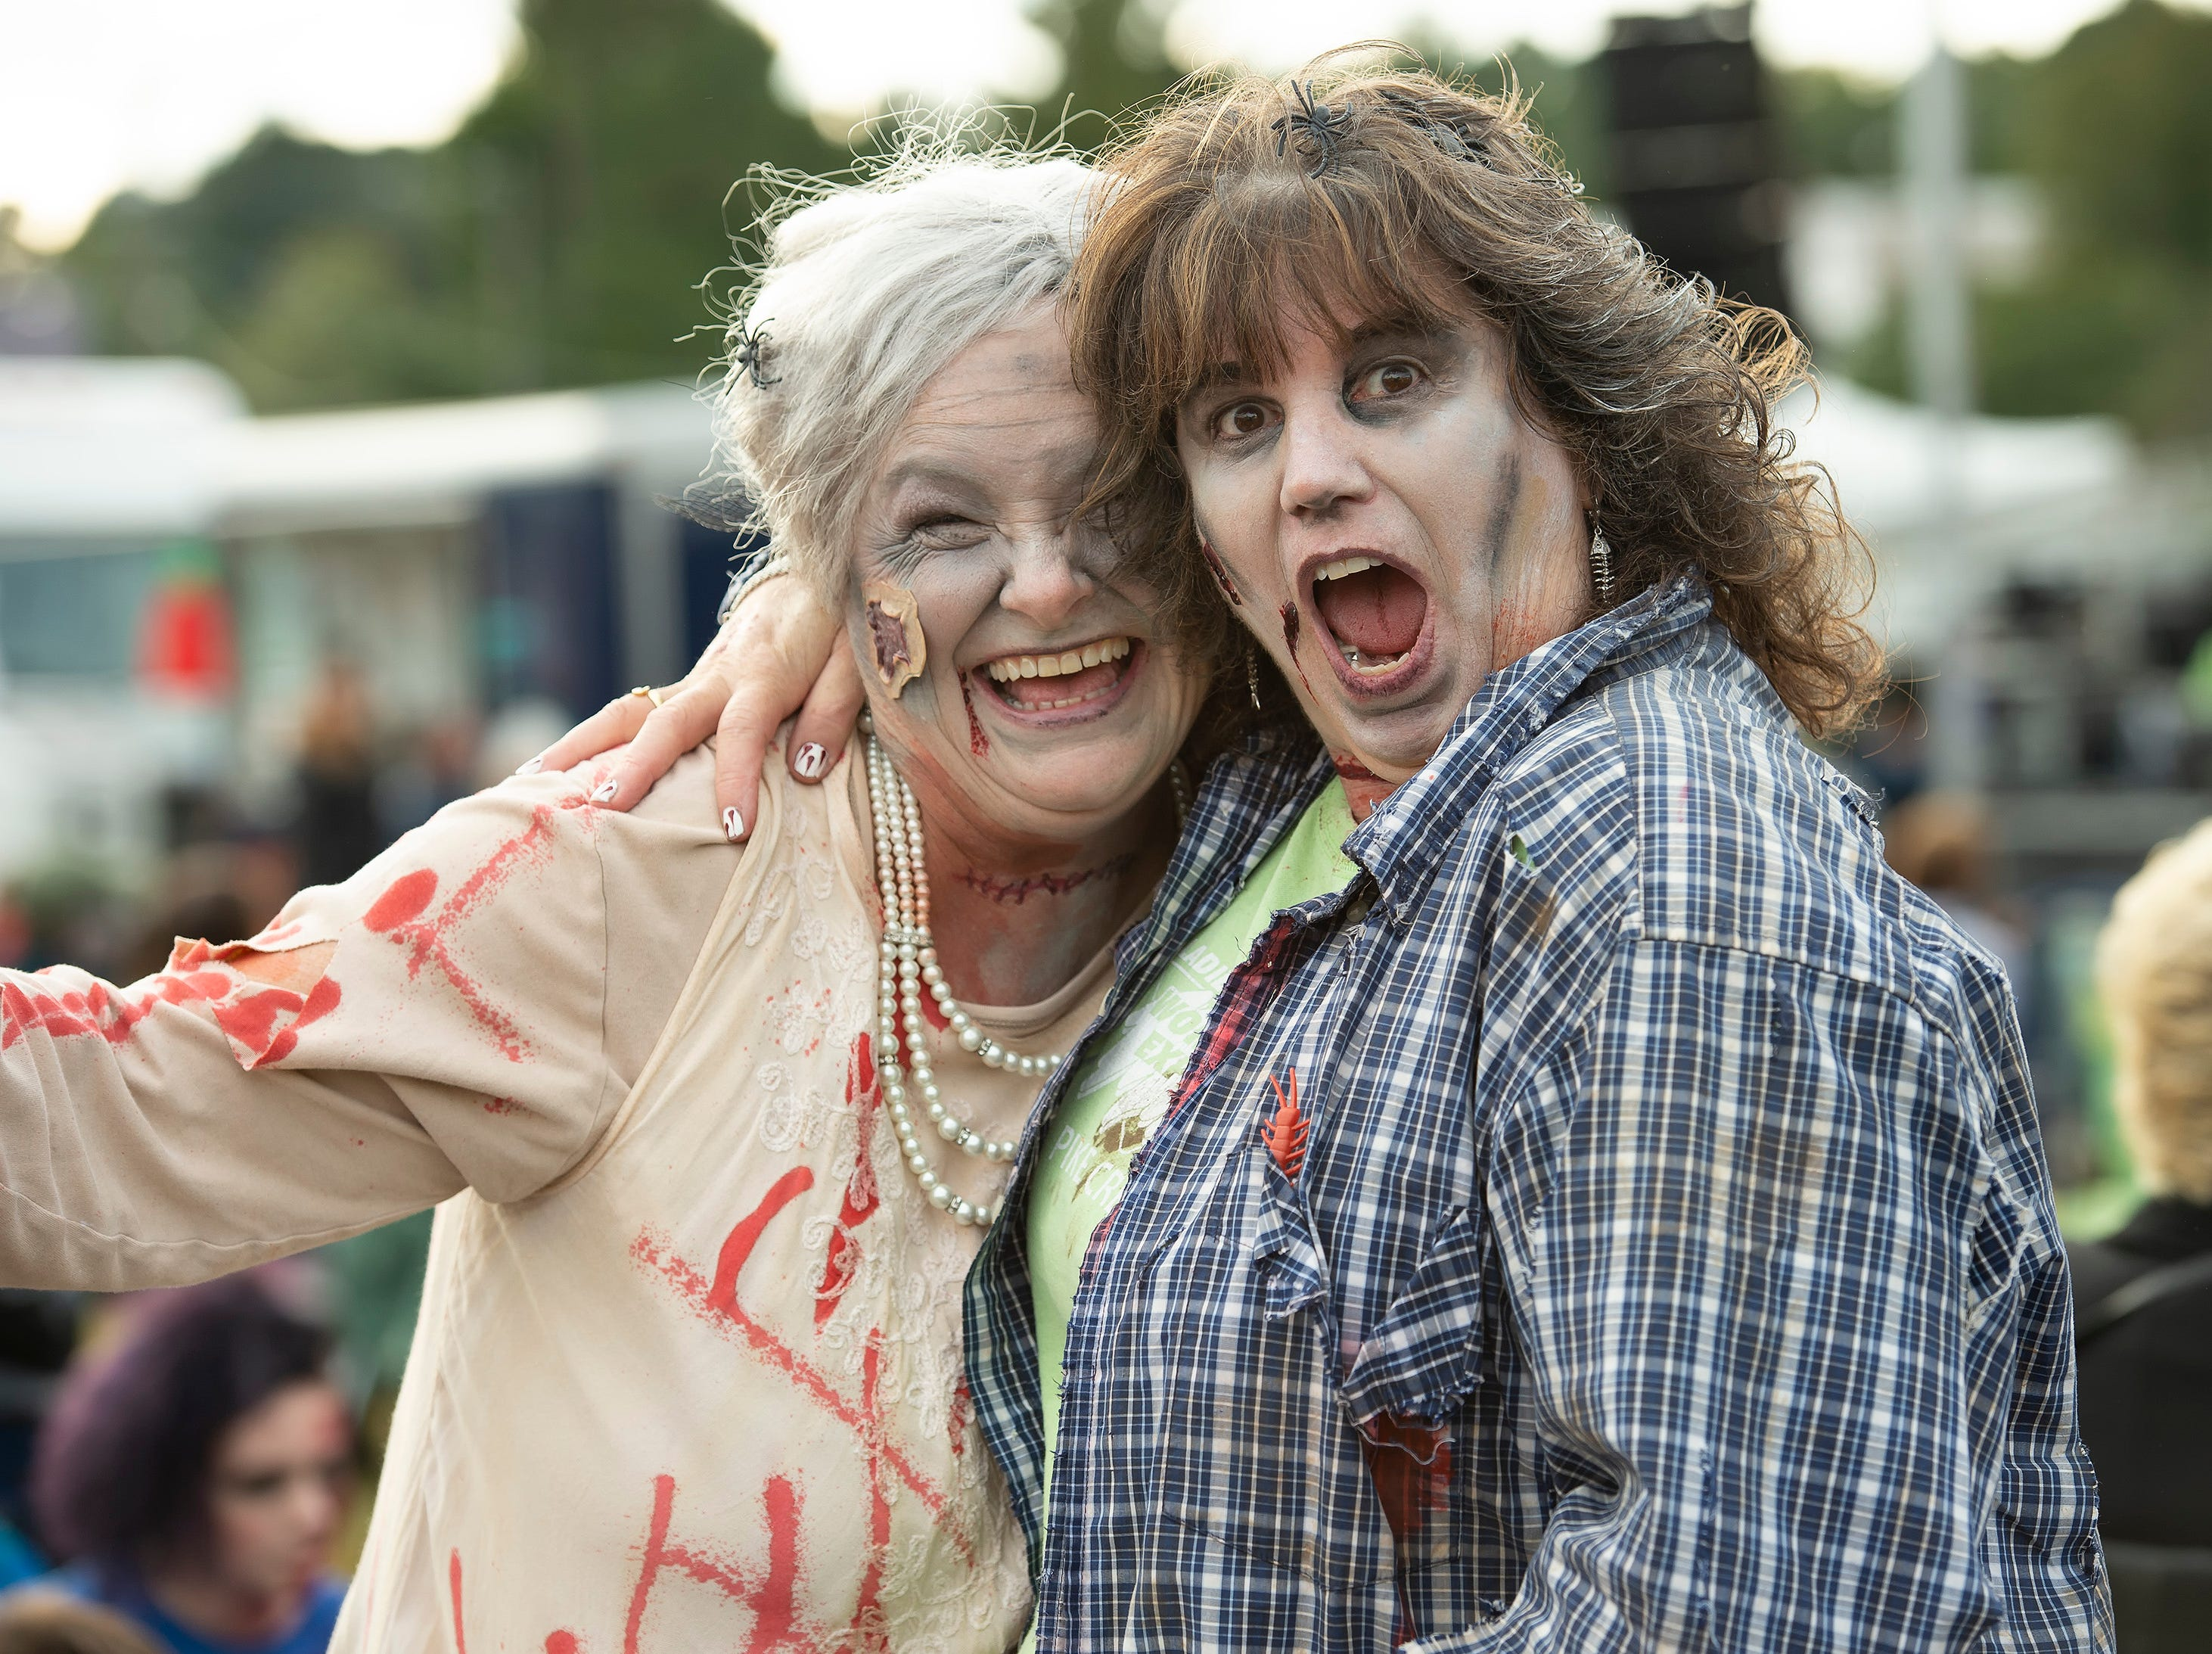 Fran Kiser, left, of Milton and Cindy Gray of Newark pose for a photo at Milton Zombie Fest.